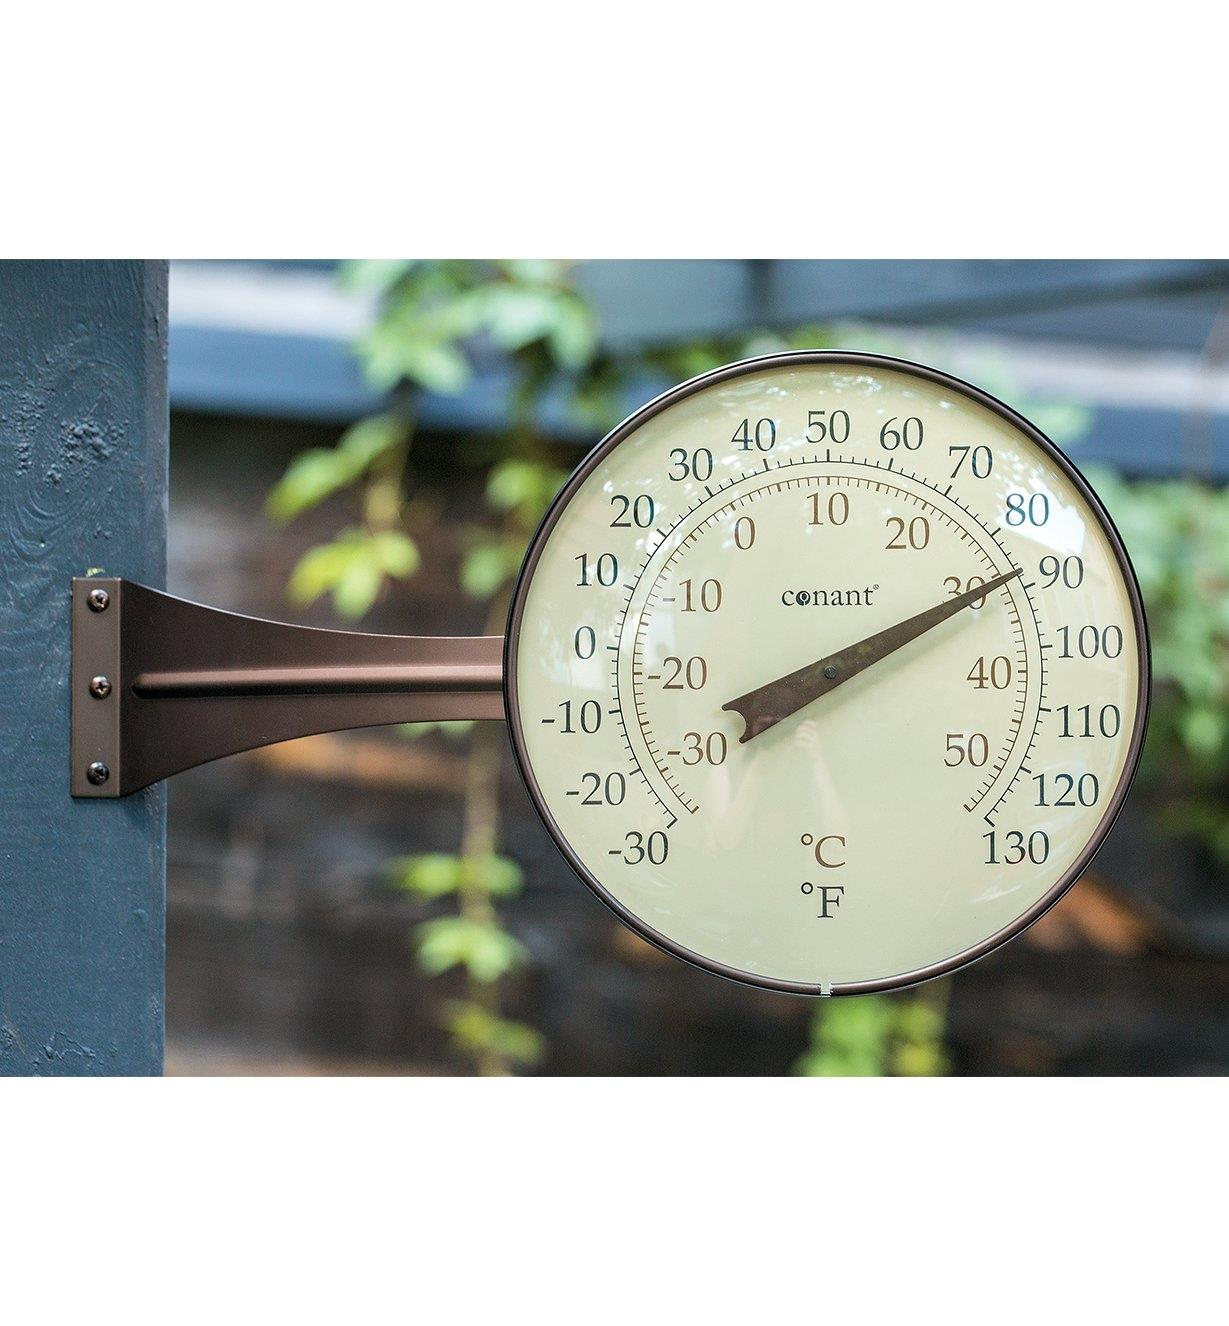 Large-Dial Thermometer mounted on an outdoor wall